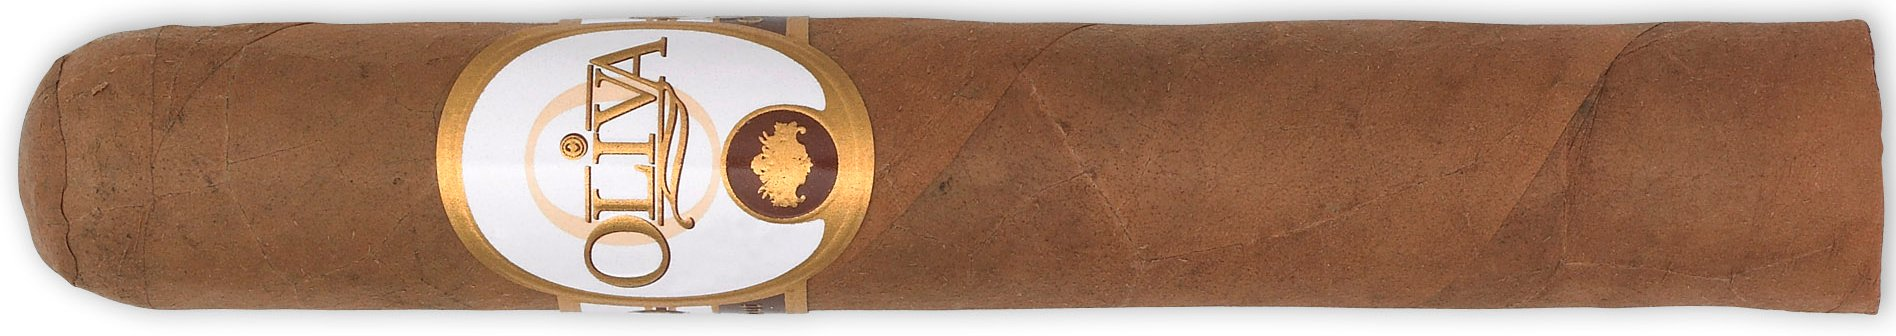 Oliva Connecticut Reserve Robusto